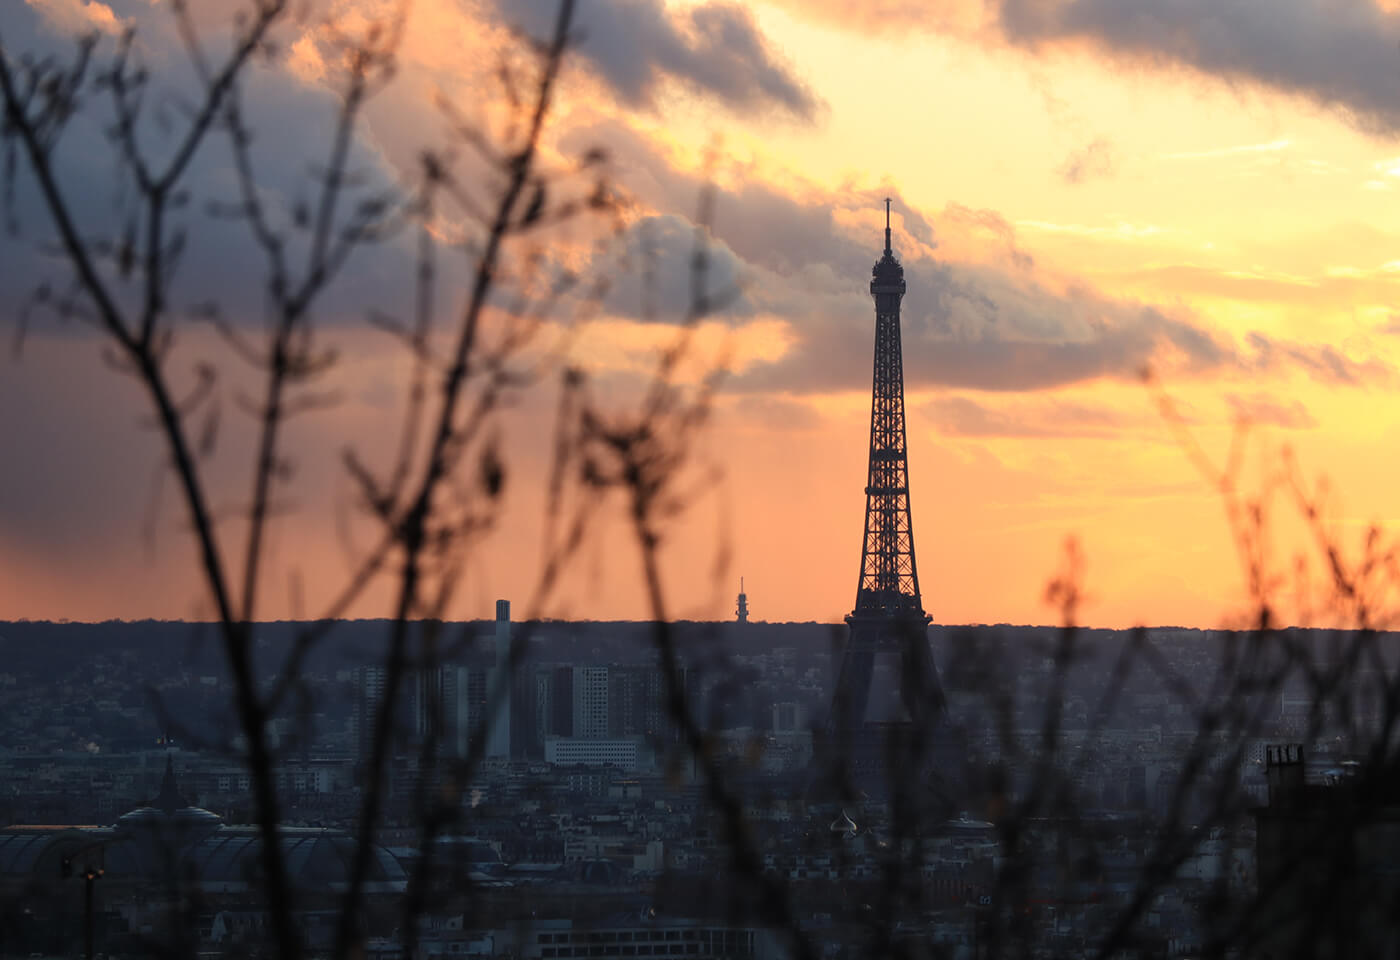 Landscape image of Eiffel Tower taken with EOS M50